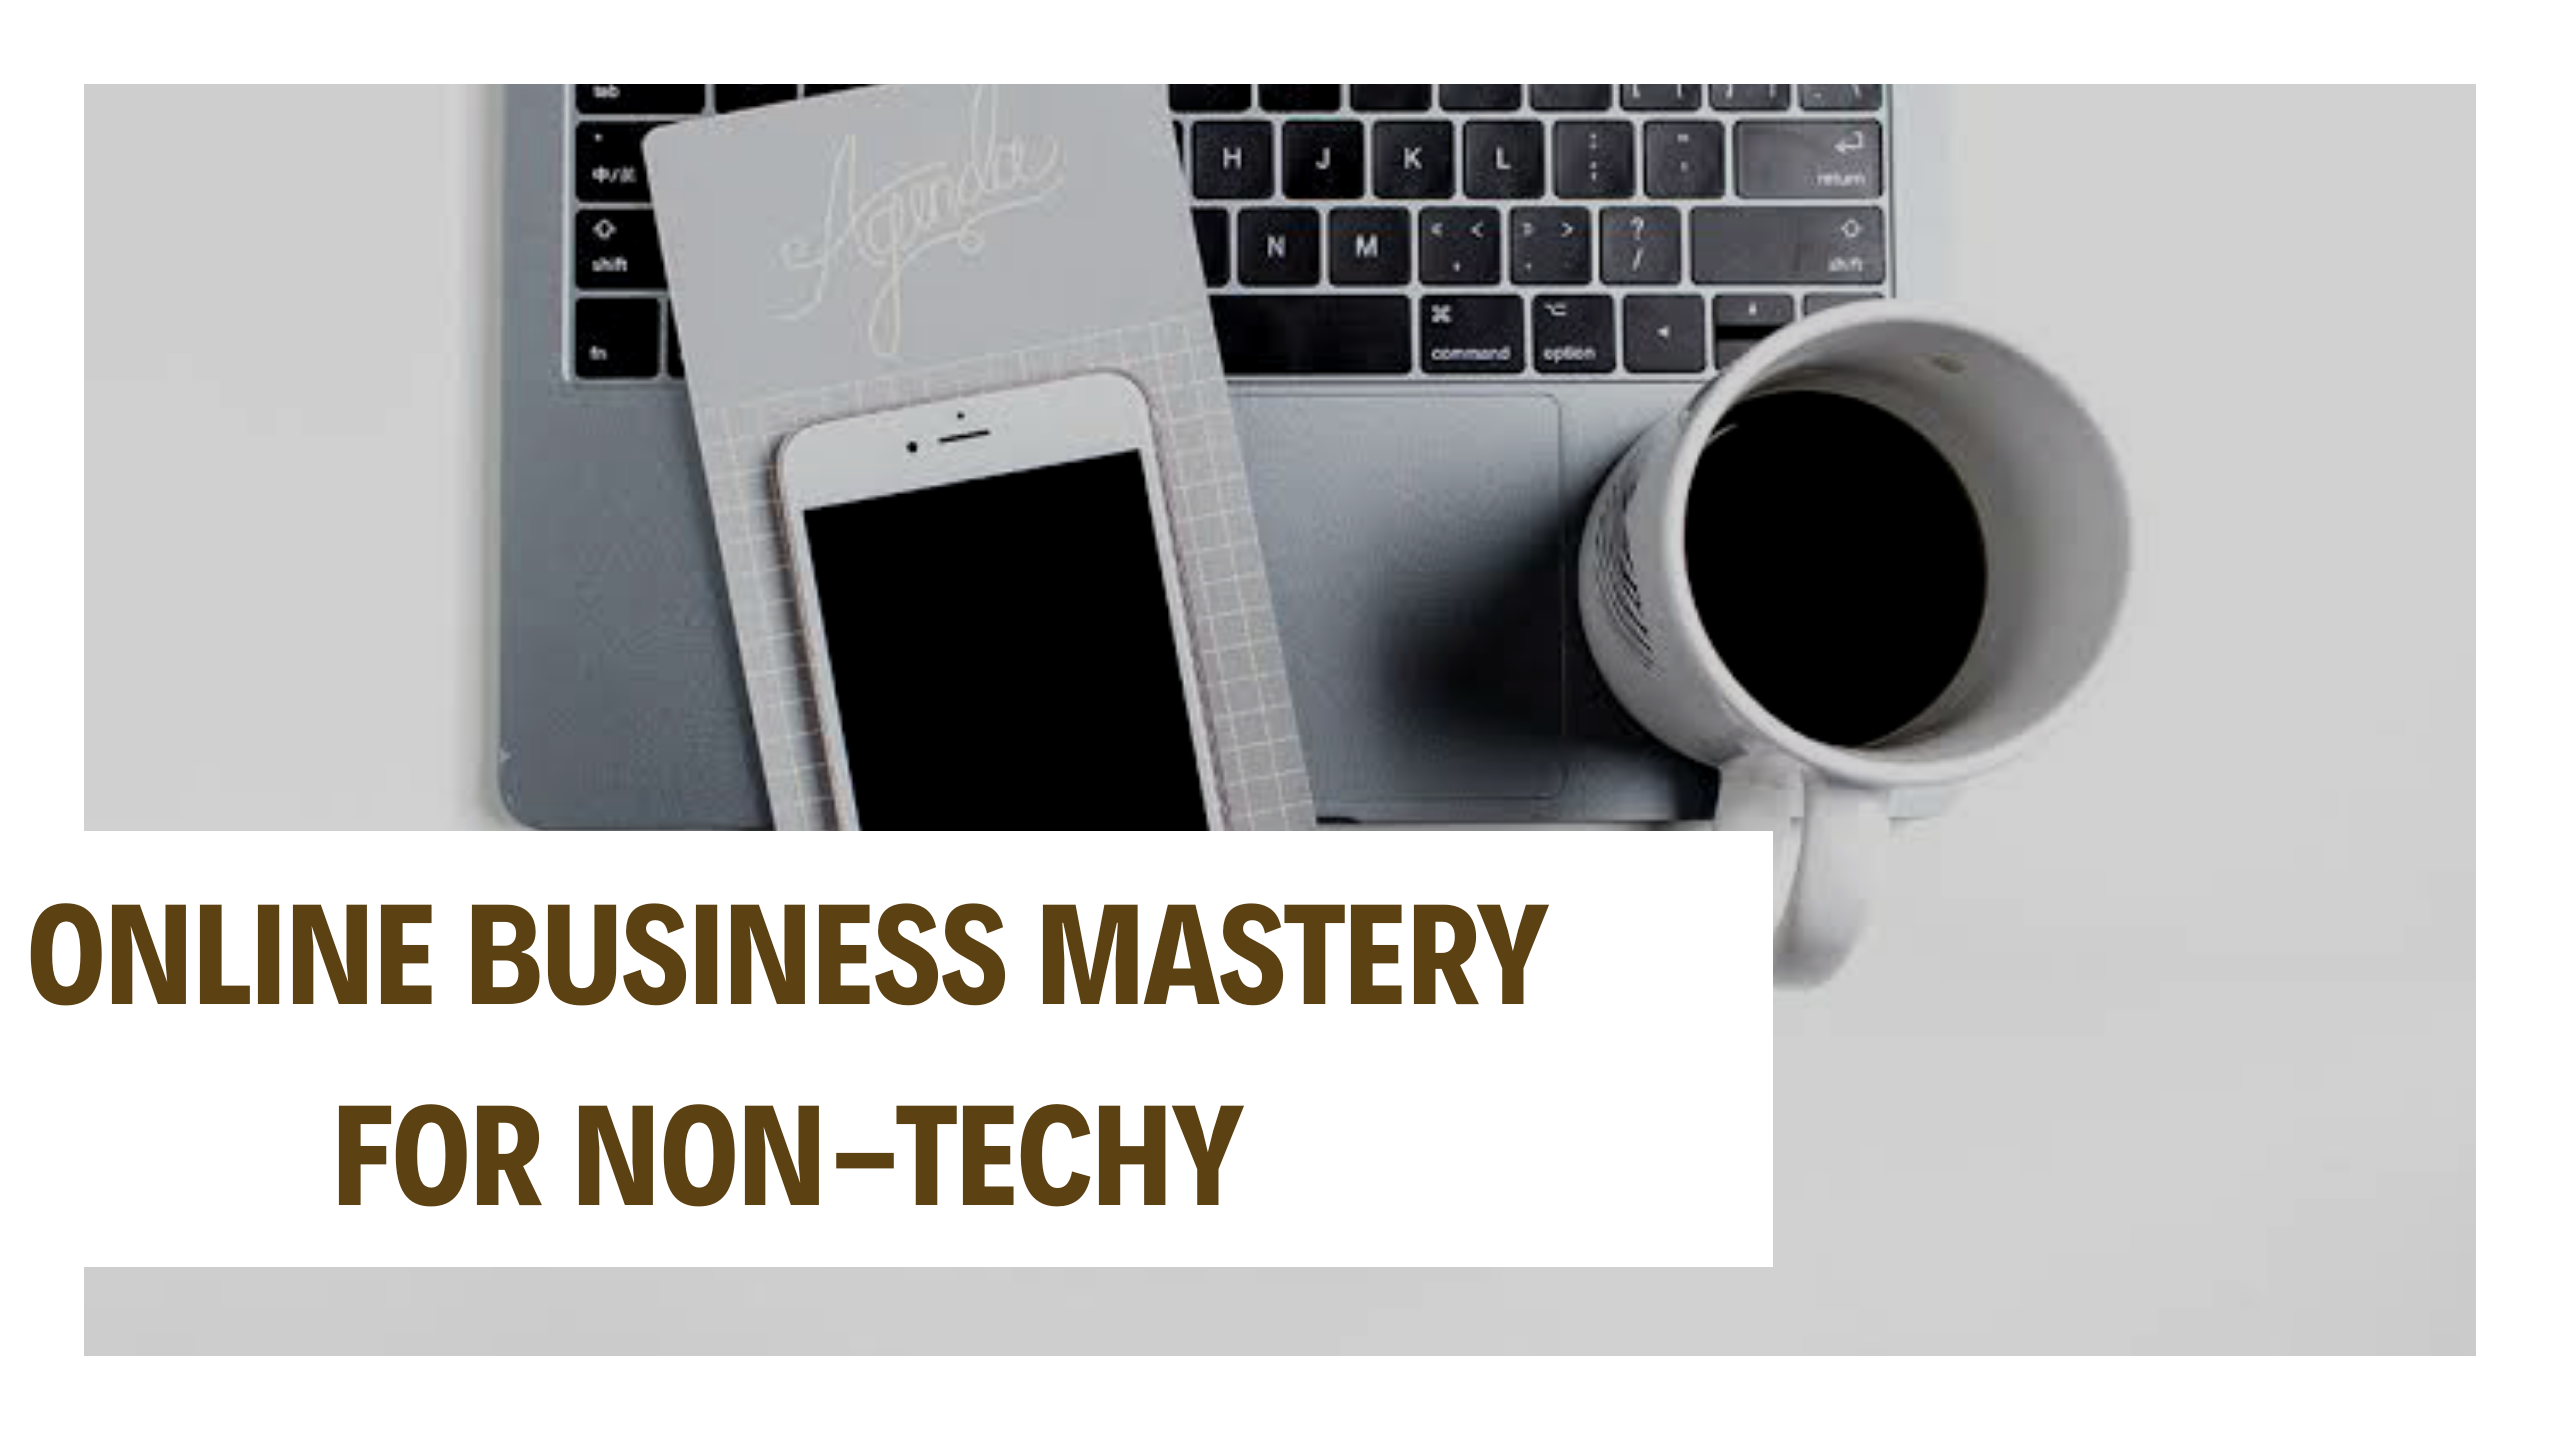 ONLINE BUSINESS MASTERY FOR NON-TECHIE